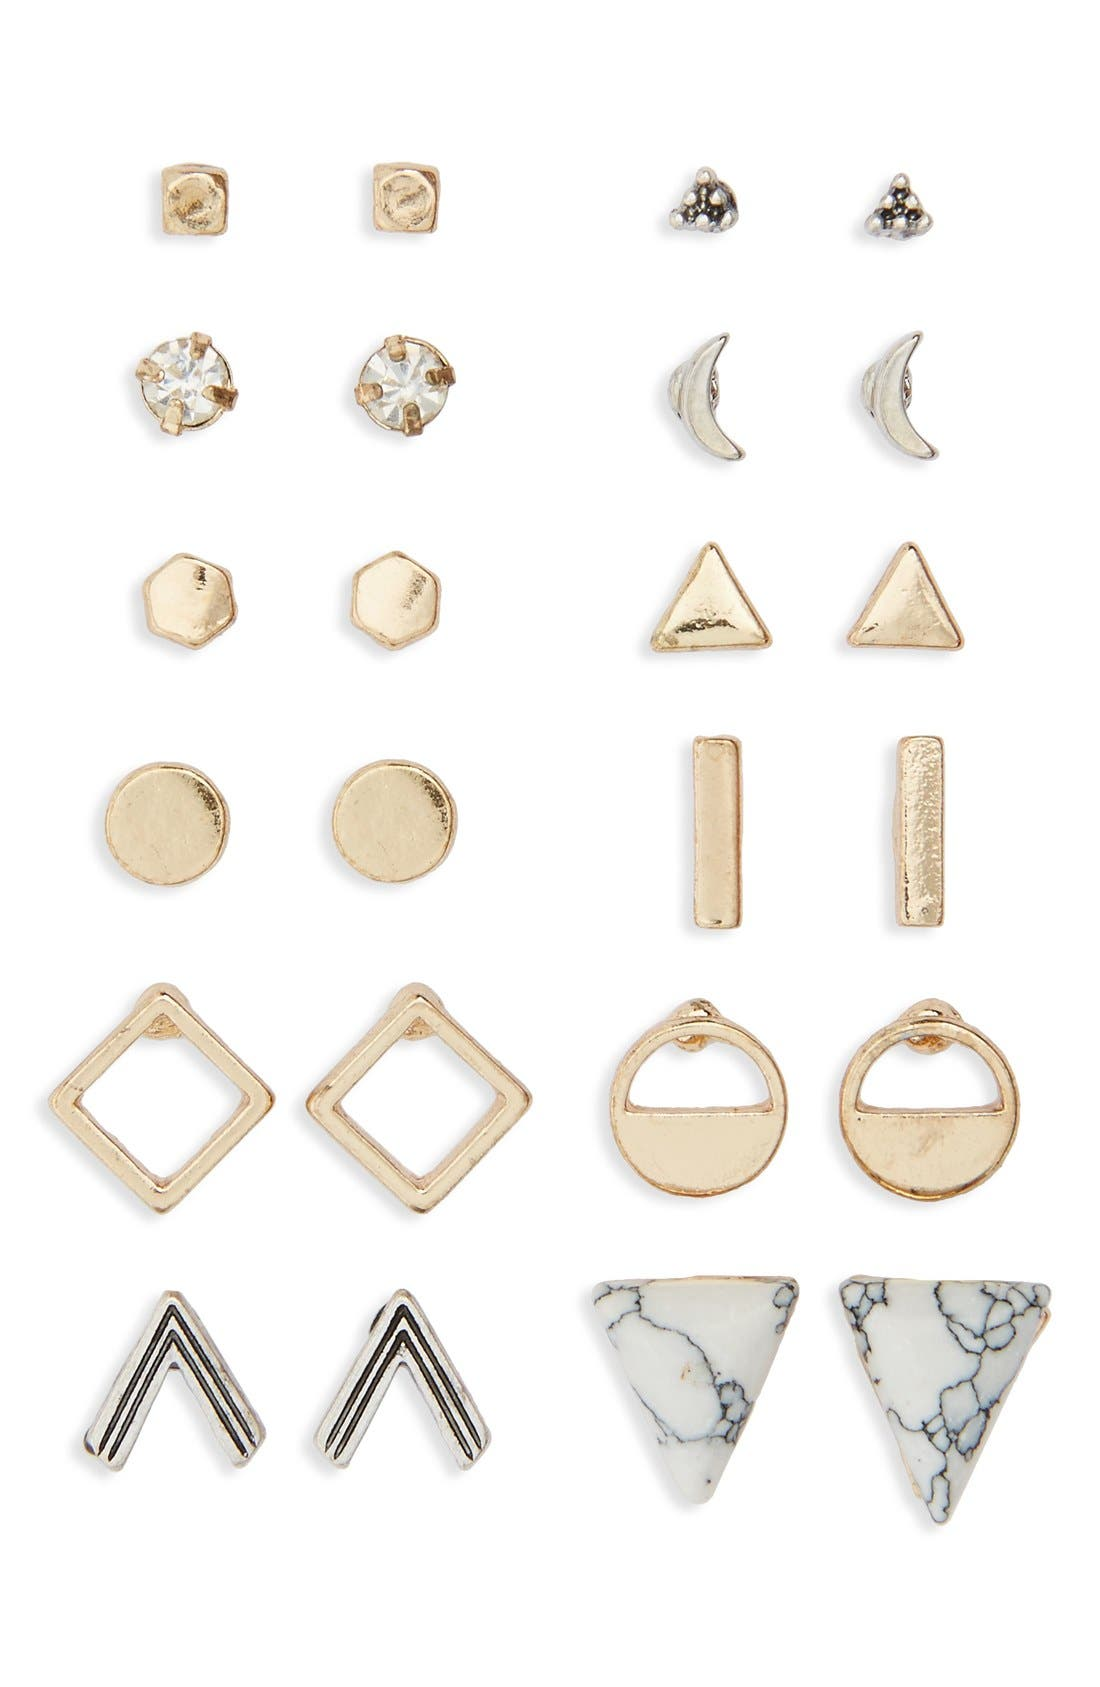 Main Image - BP. Geometric Stud Earrings (Set of 12)